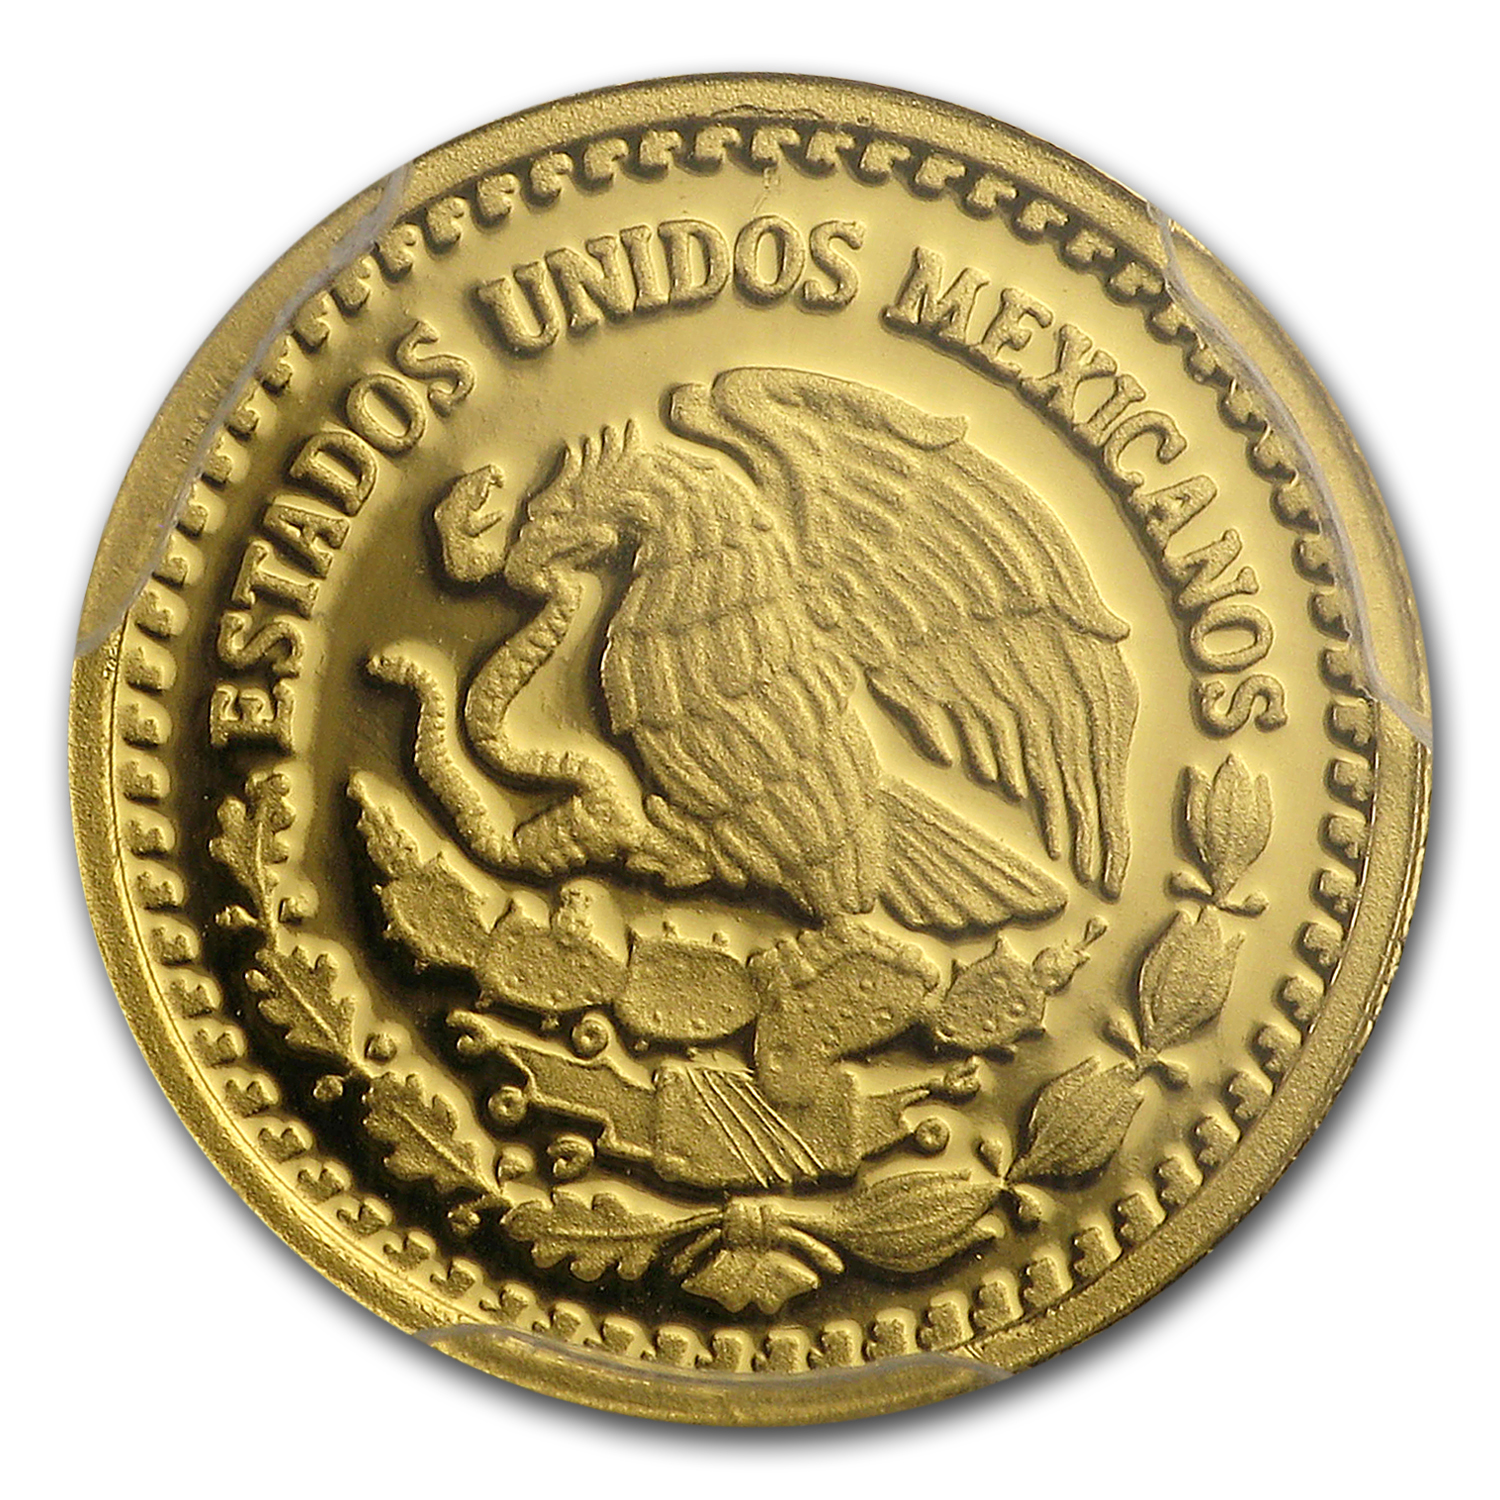 2016 Mexico 1/20 oz Gold Libertad PR-70 PCGS (FS, Green Label)